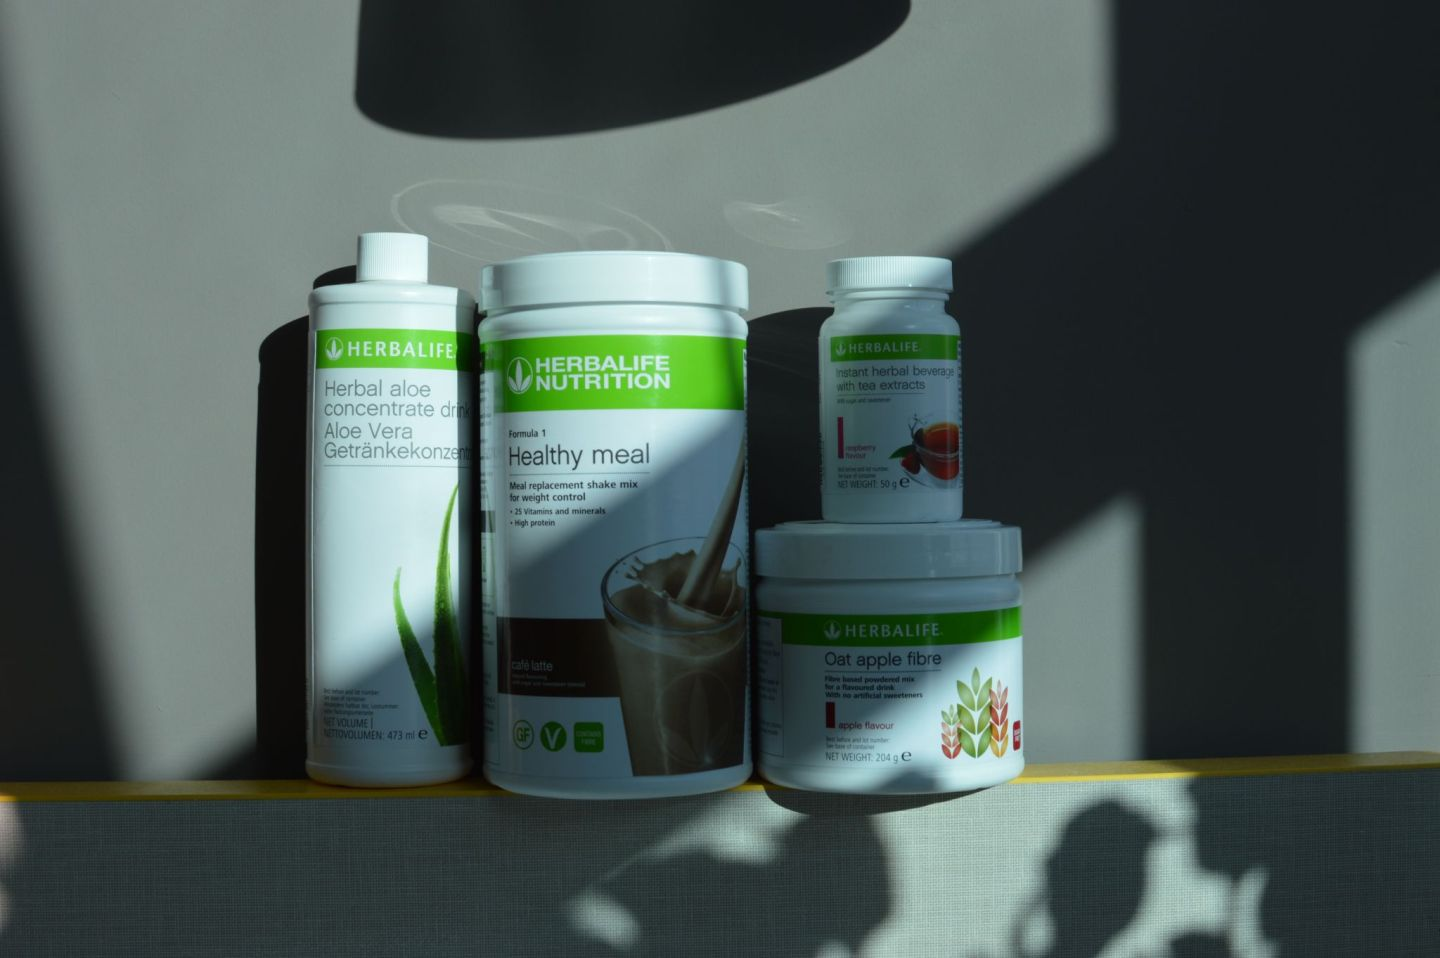 Herbalife Nutrition Shares Tips to Help People Improve Their Health